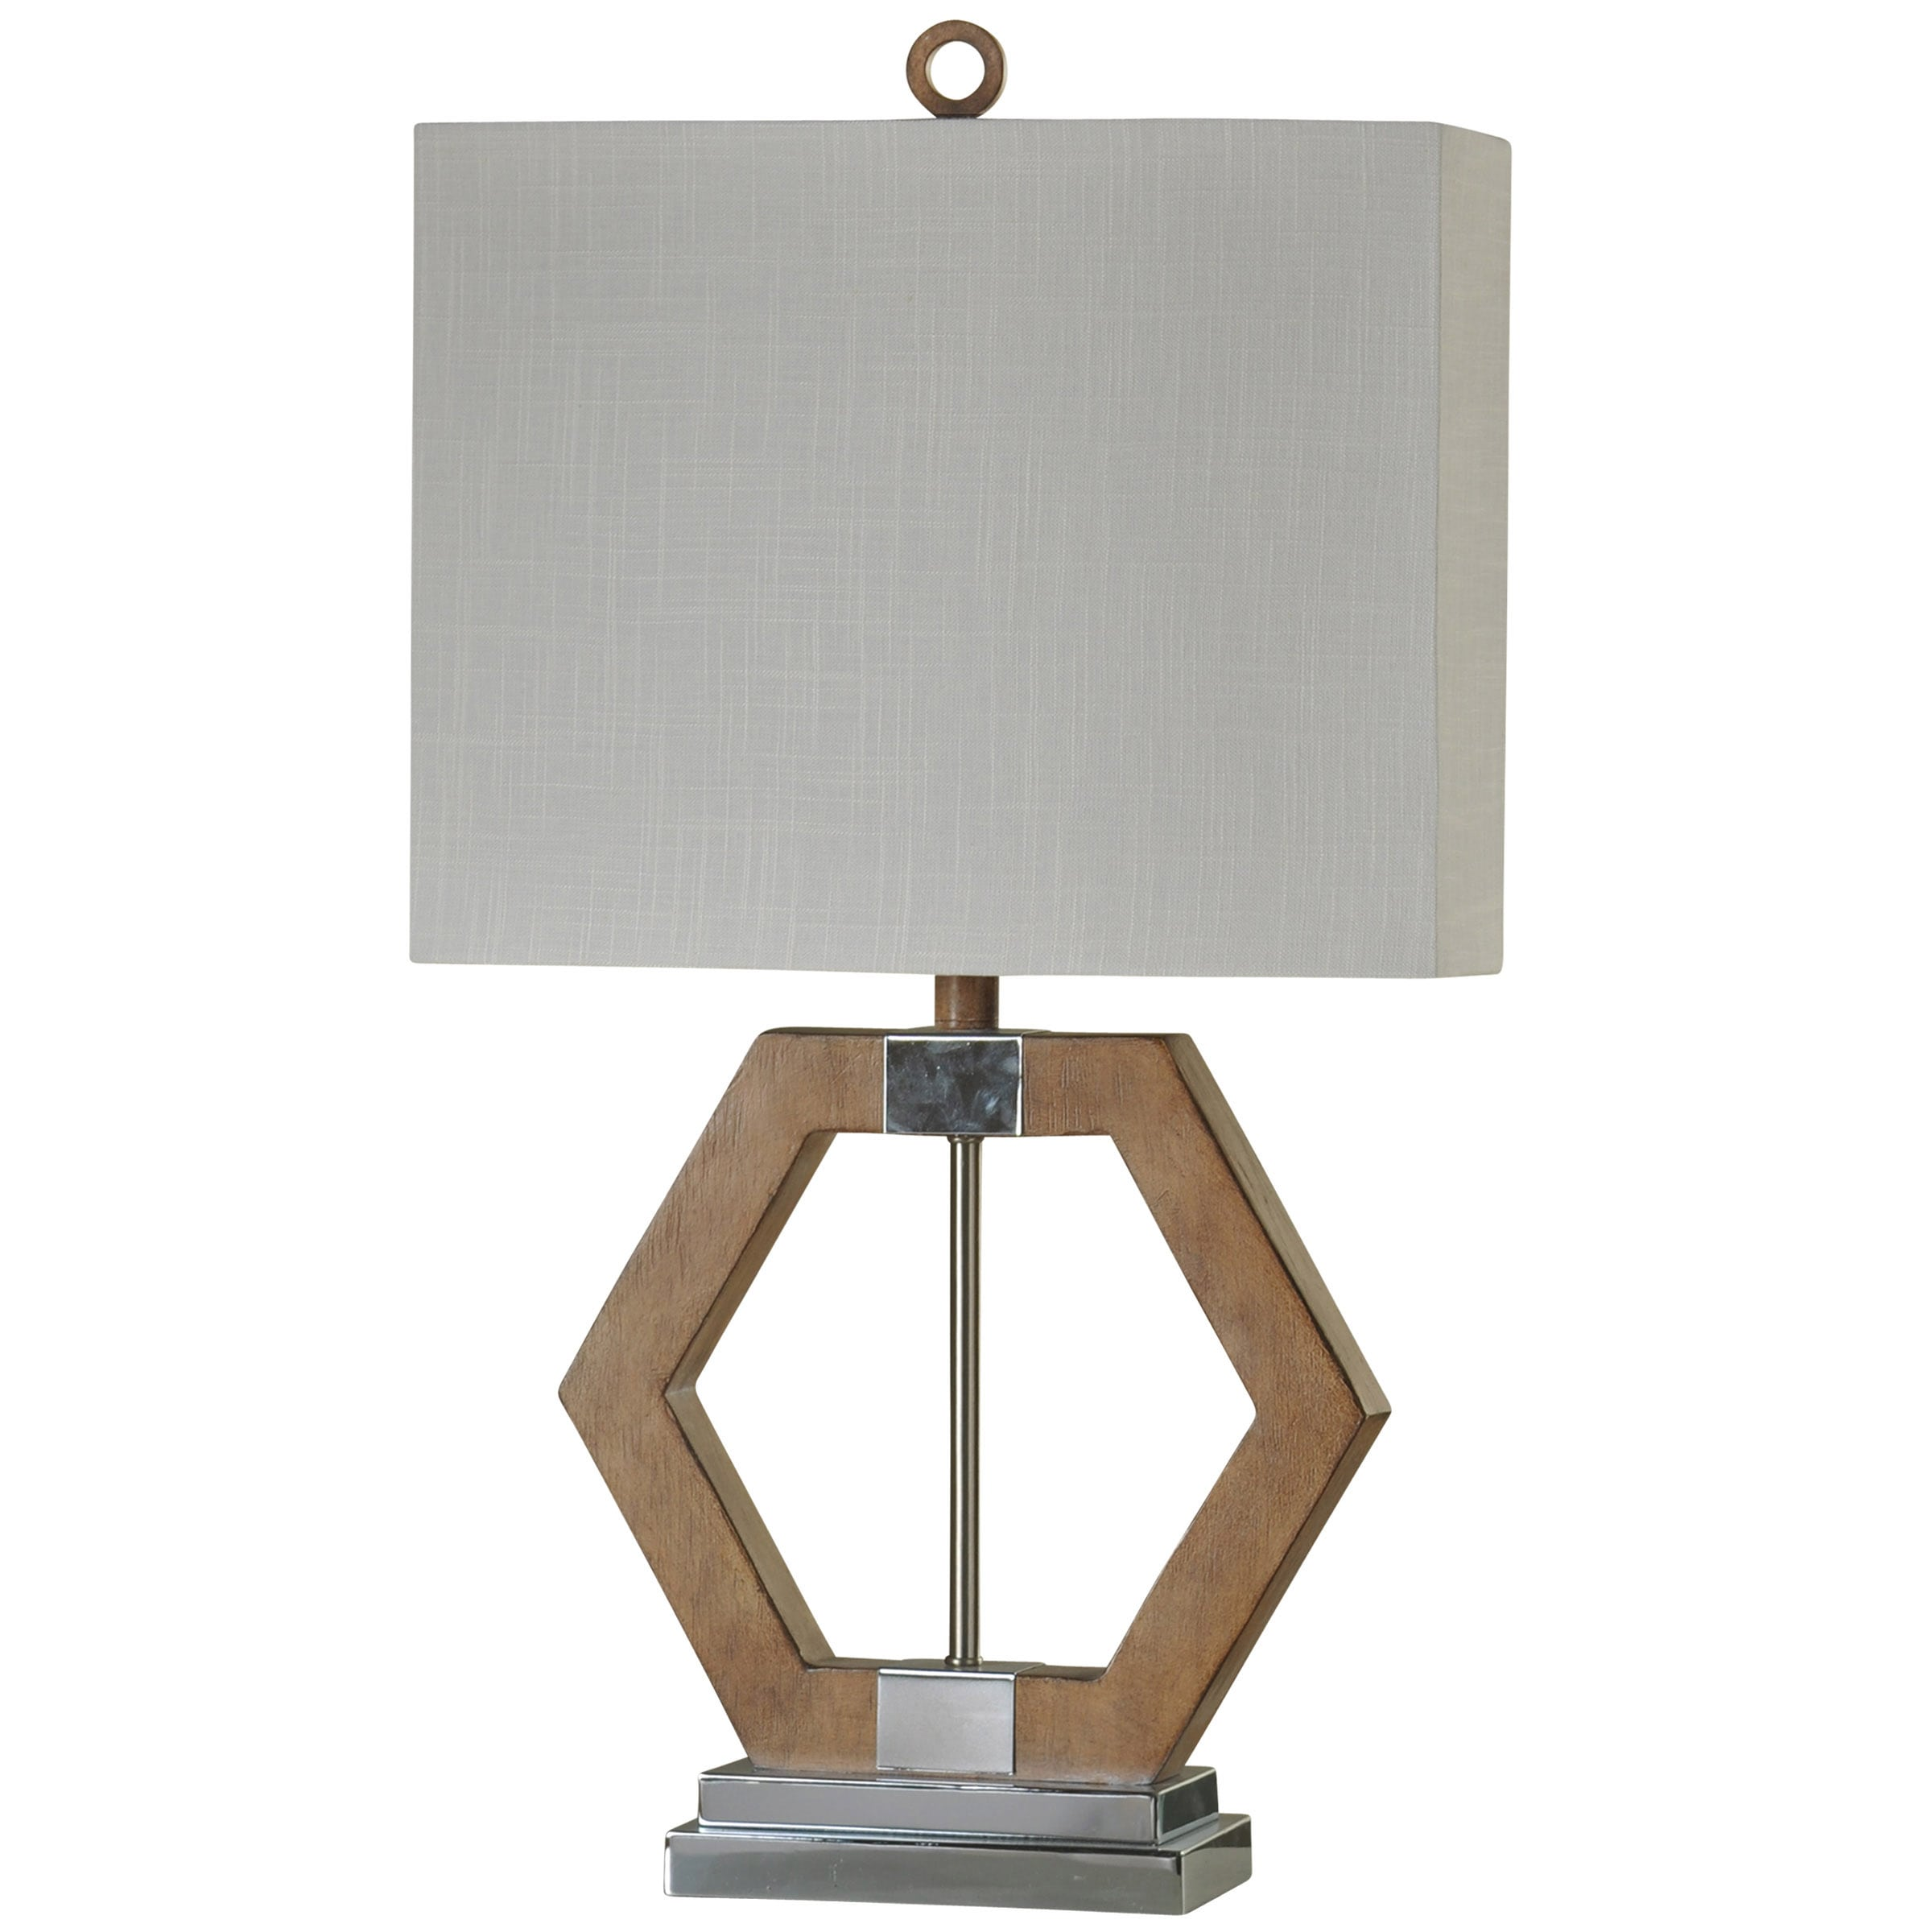 Hexan Geometric Table Lamp